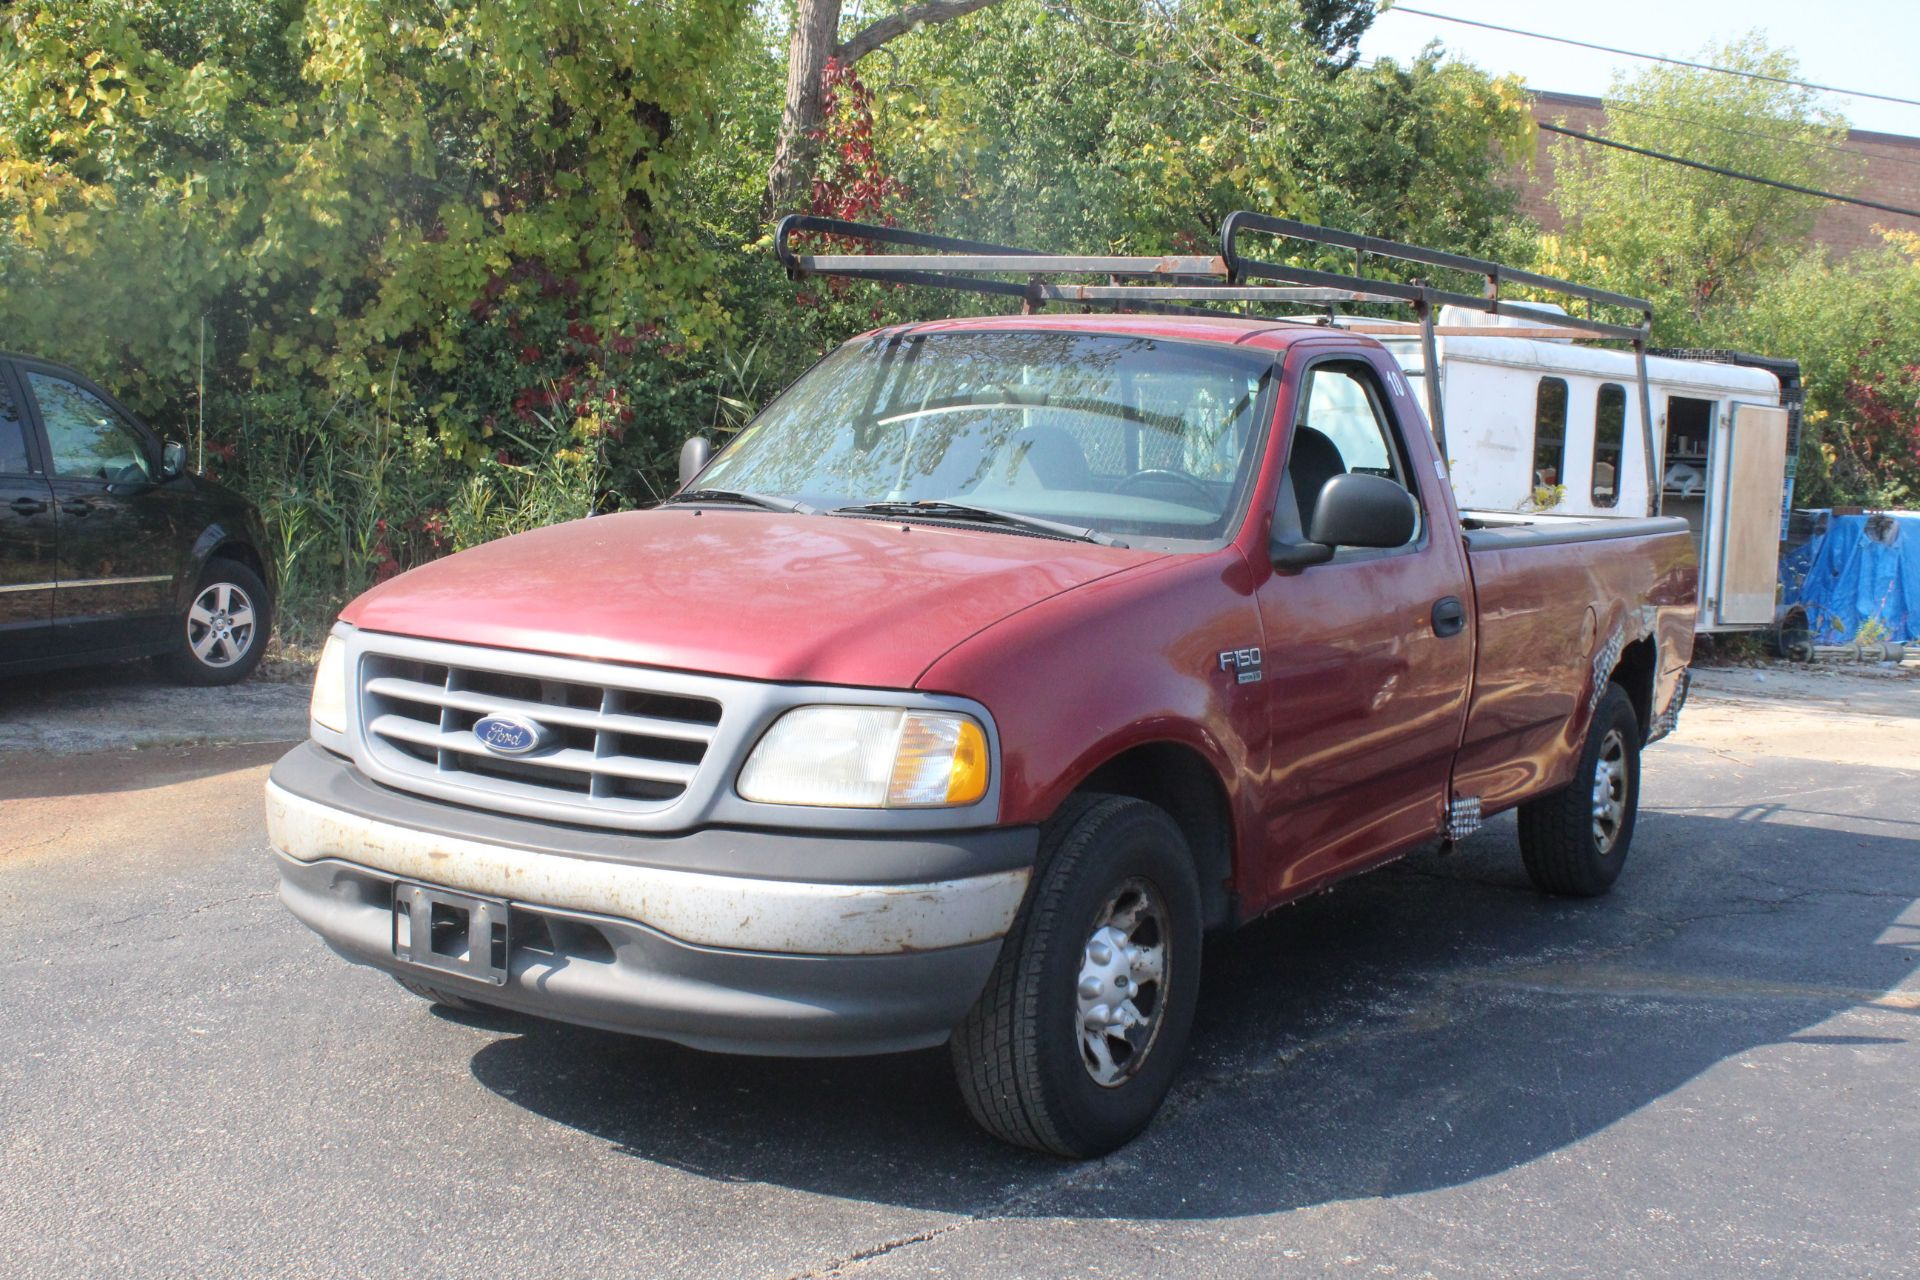 Lot 2 - 2001 FORD F150 7700 SERIES STANDARD CAB PICKUP TRUCK, 8' BED, 114, 882 MILES SHOWN ON ODOMETER